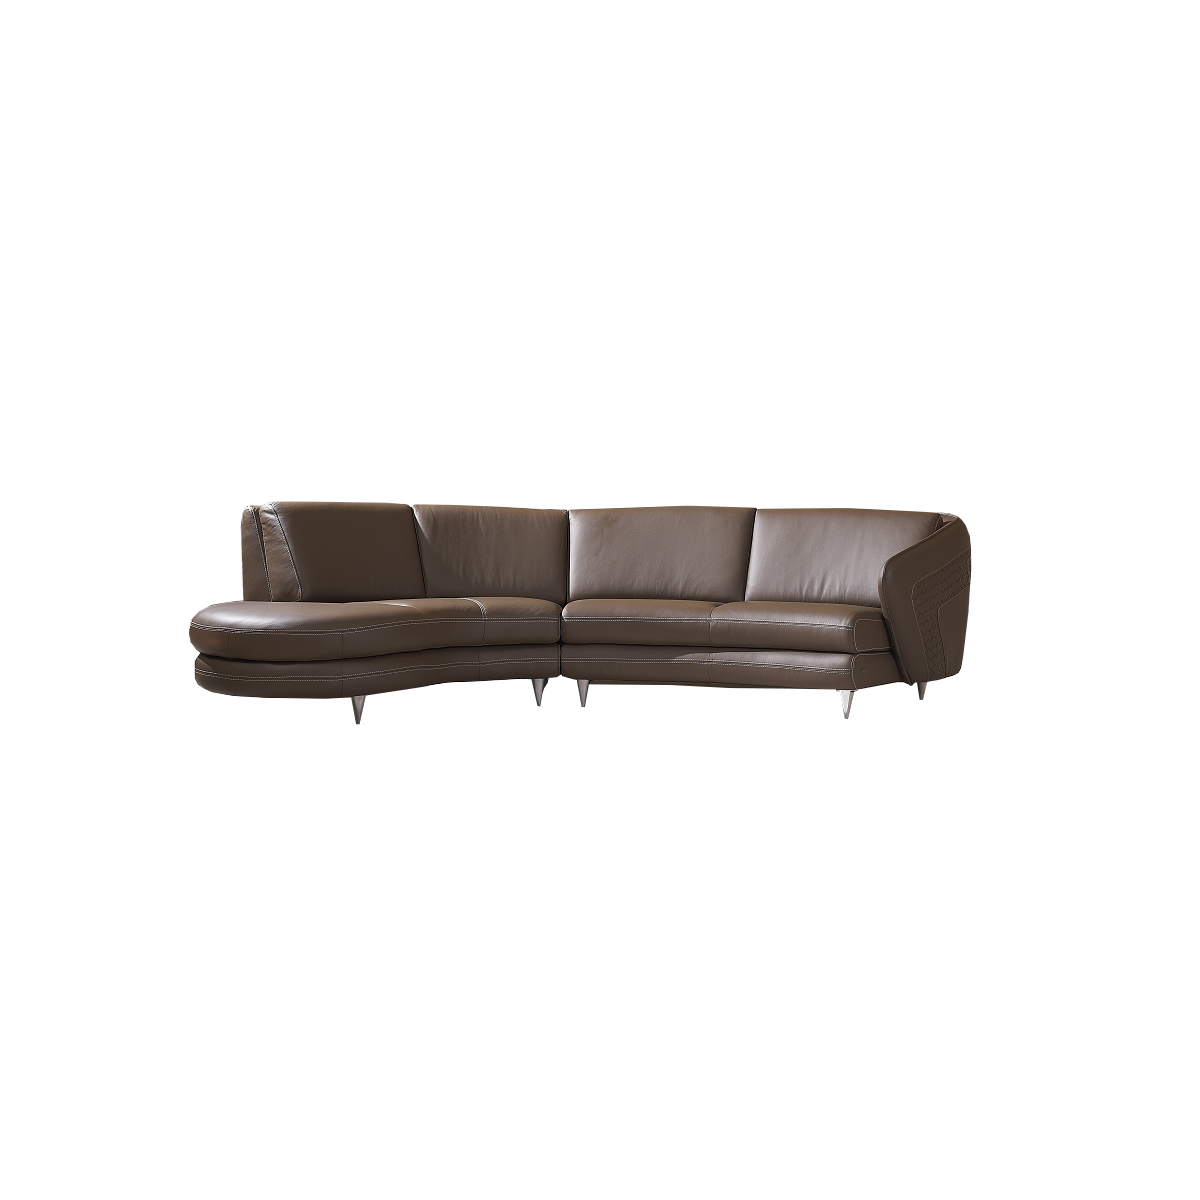 Freccia Leather Sofa